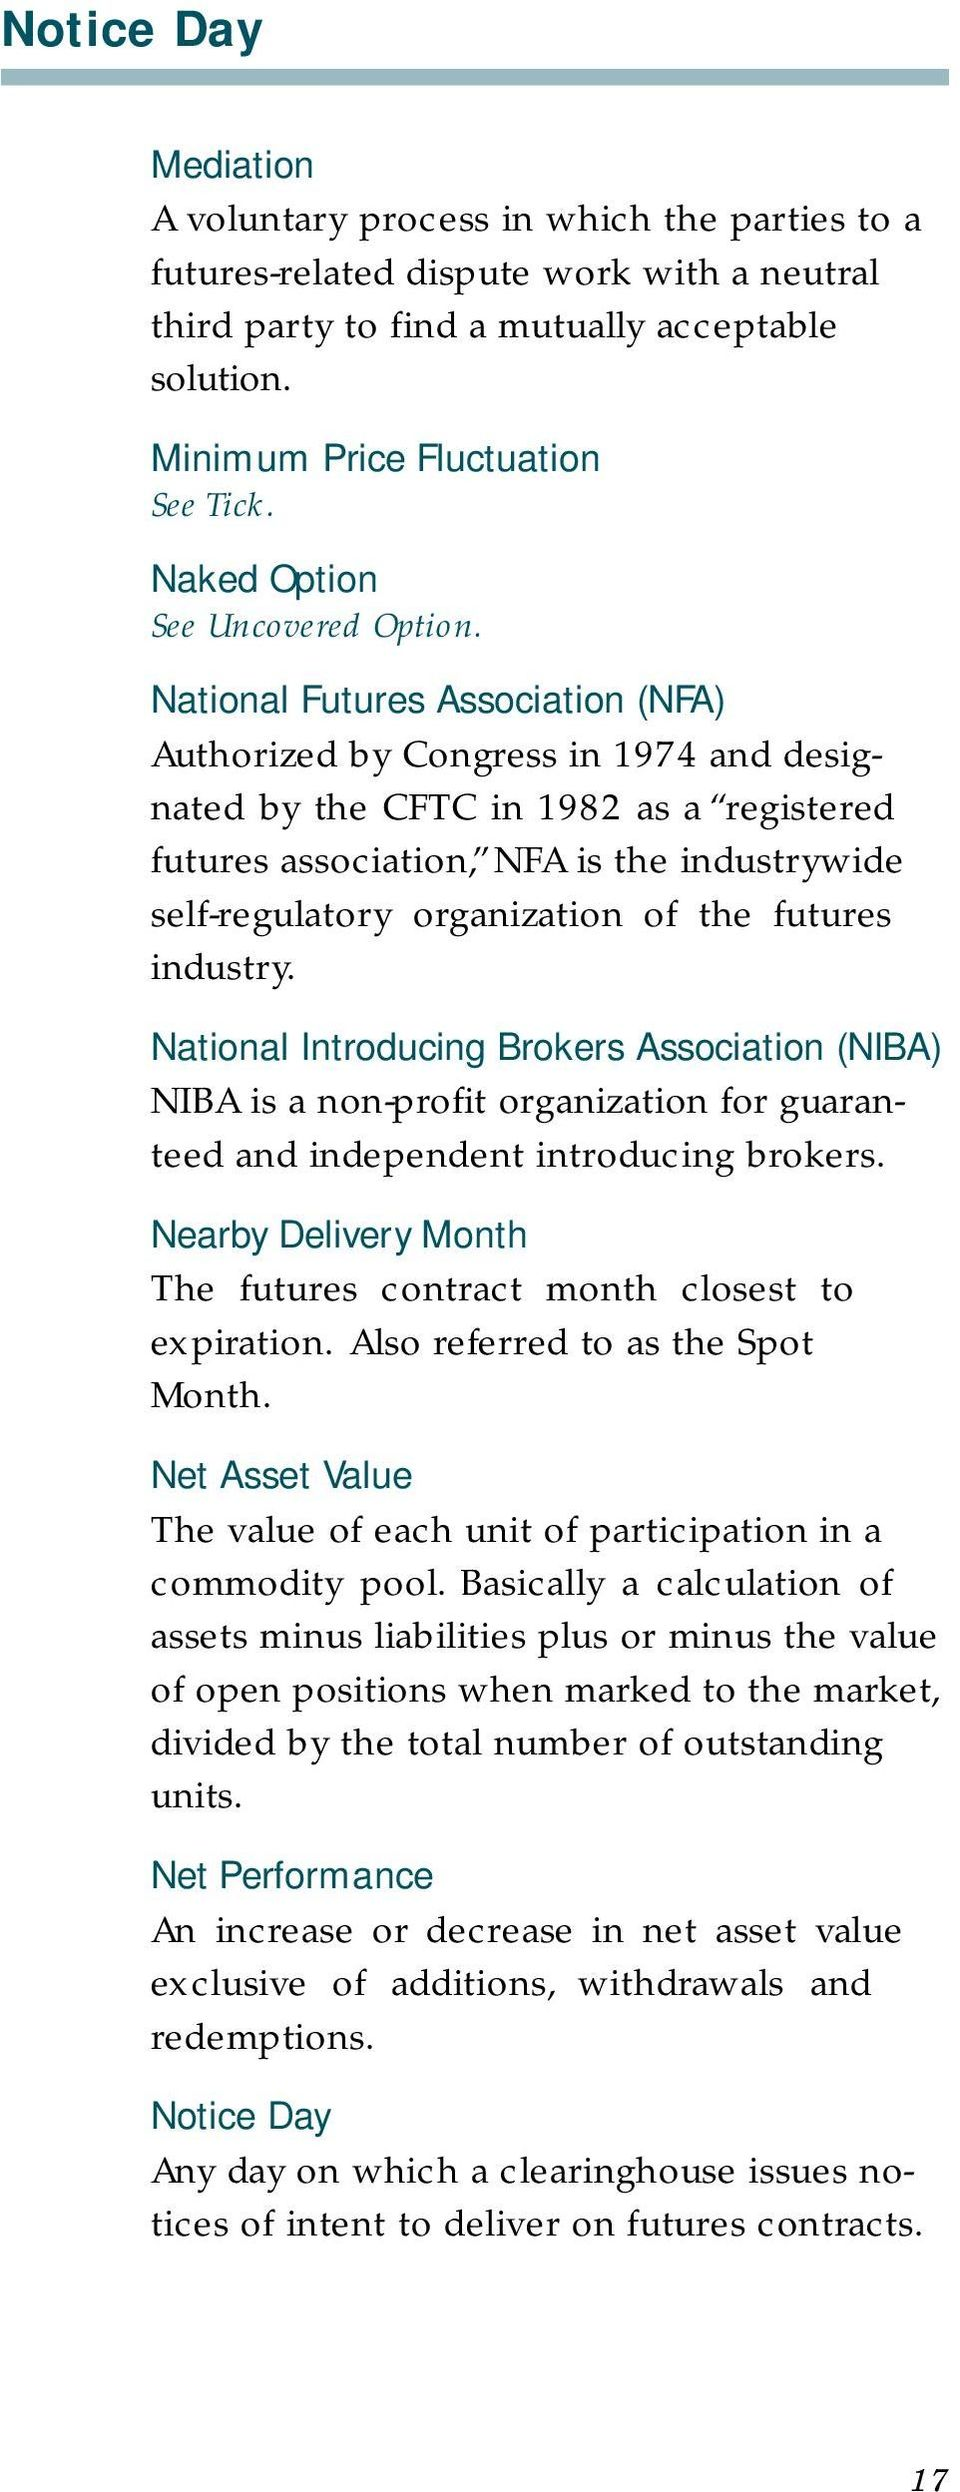 National Futures Association (NFA) Authorized by Congress in 1974 and designated by the CFTC in 1982 as a registered futures association, NFA is the industrywide self-regulatory organization of the